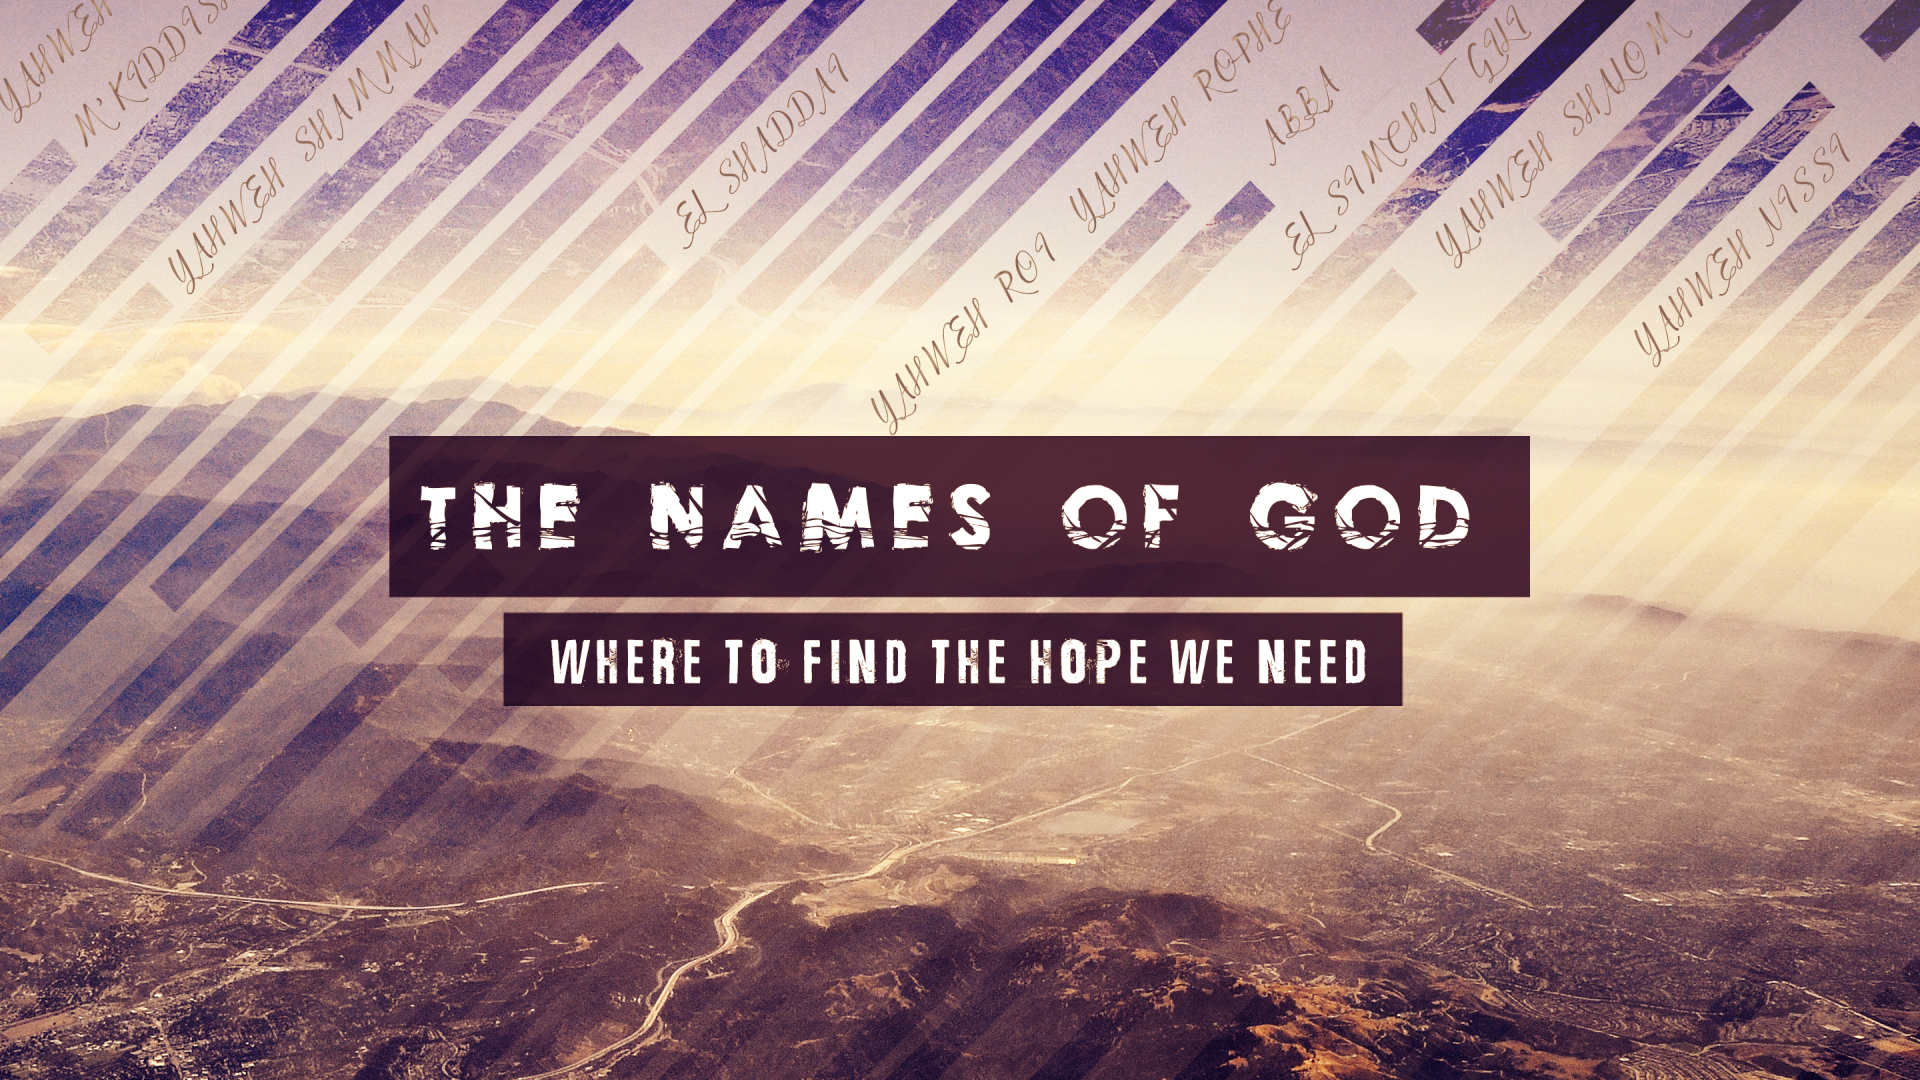 Where to Find the Hope We Need